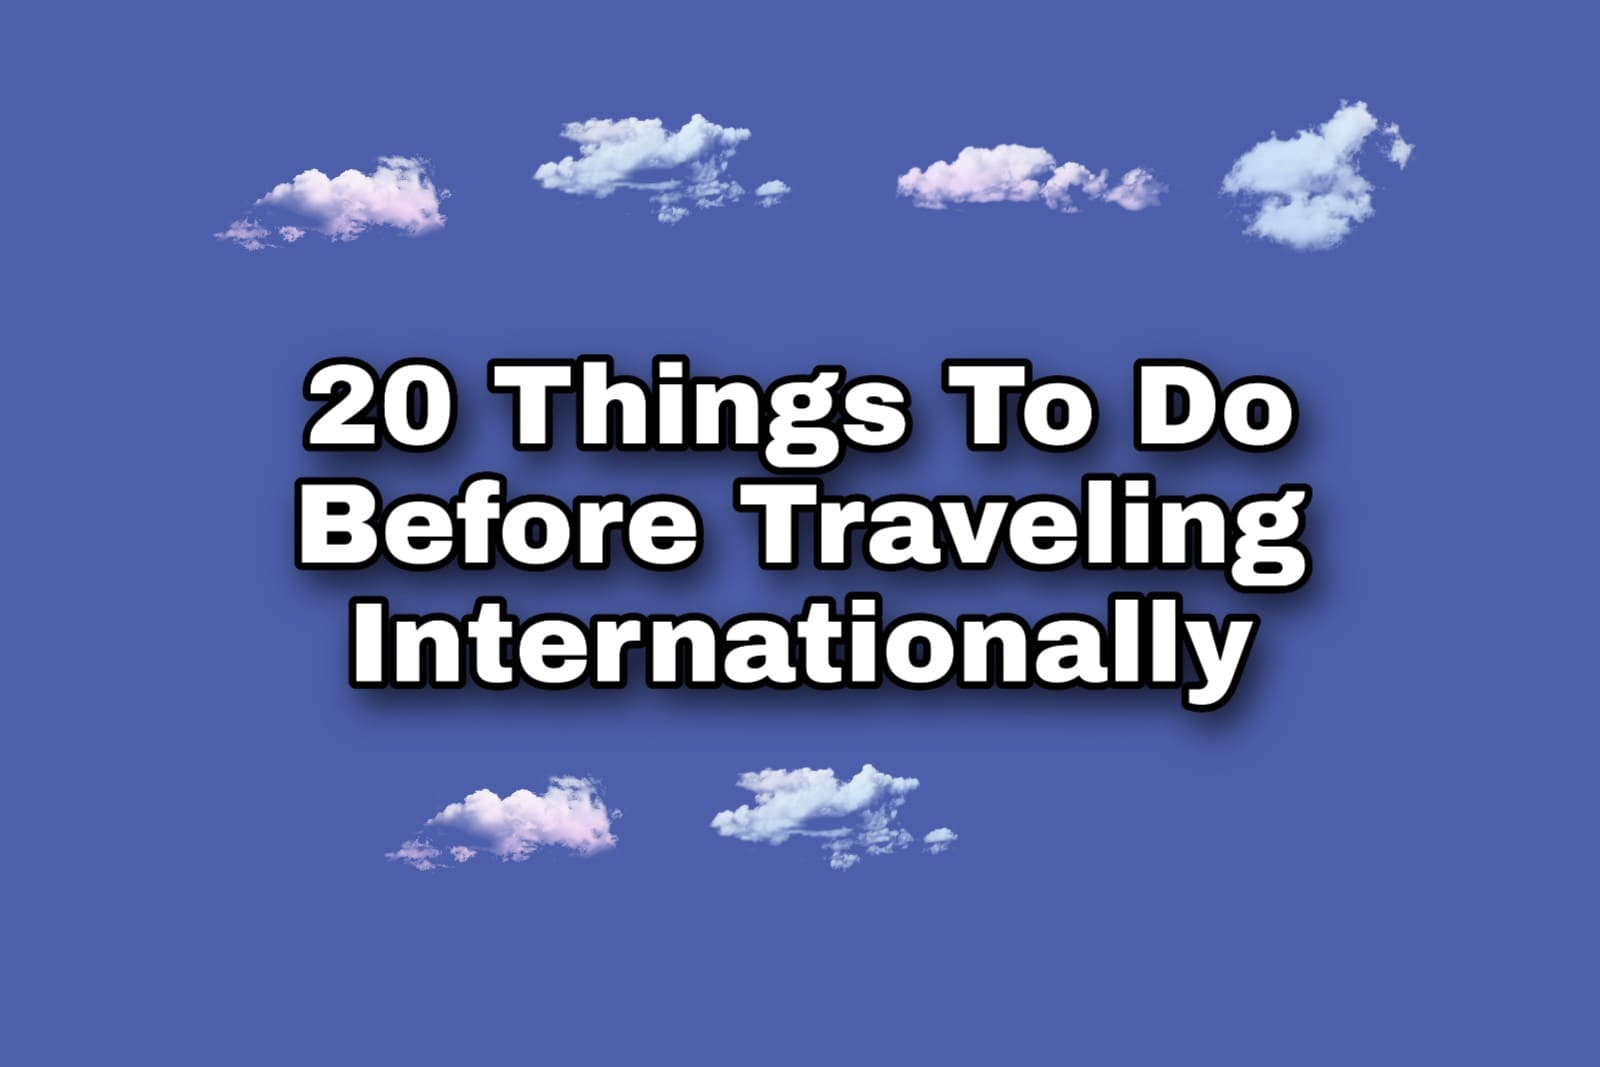 20 Things To Do Before Traveling Internationally